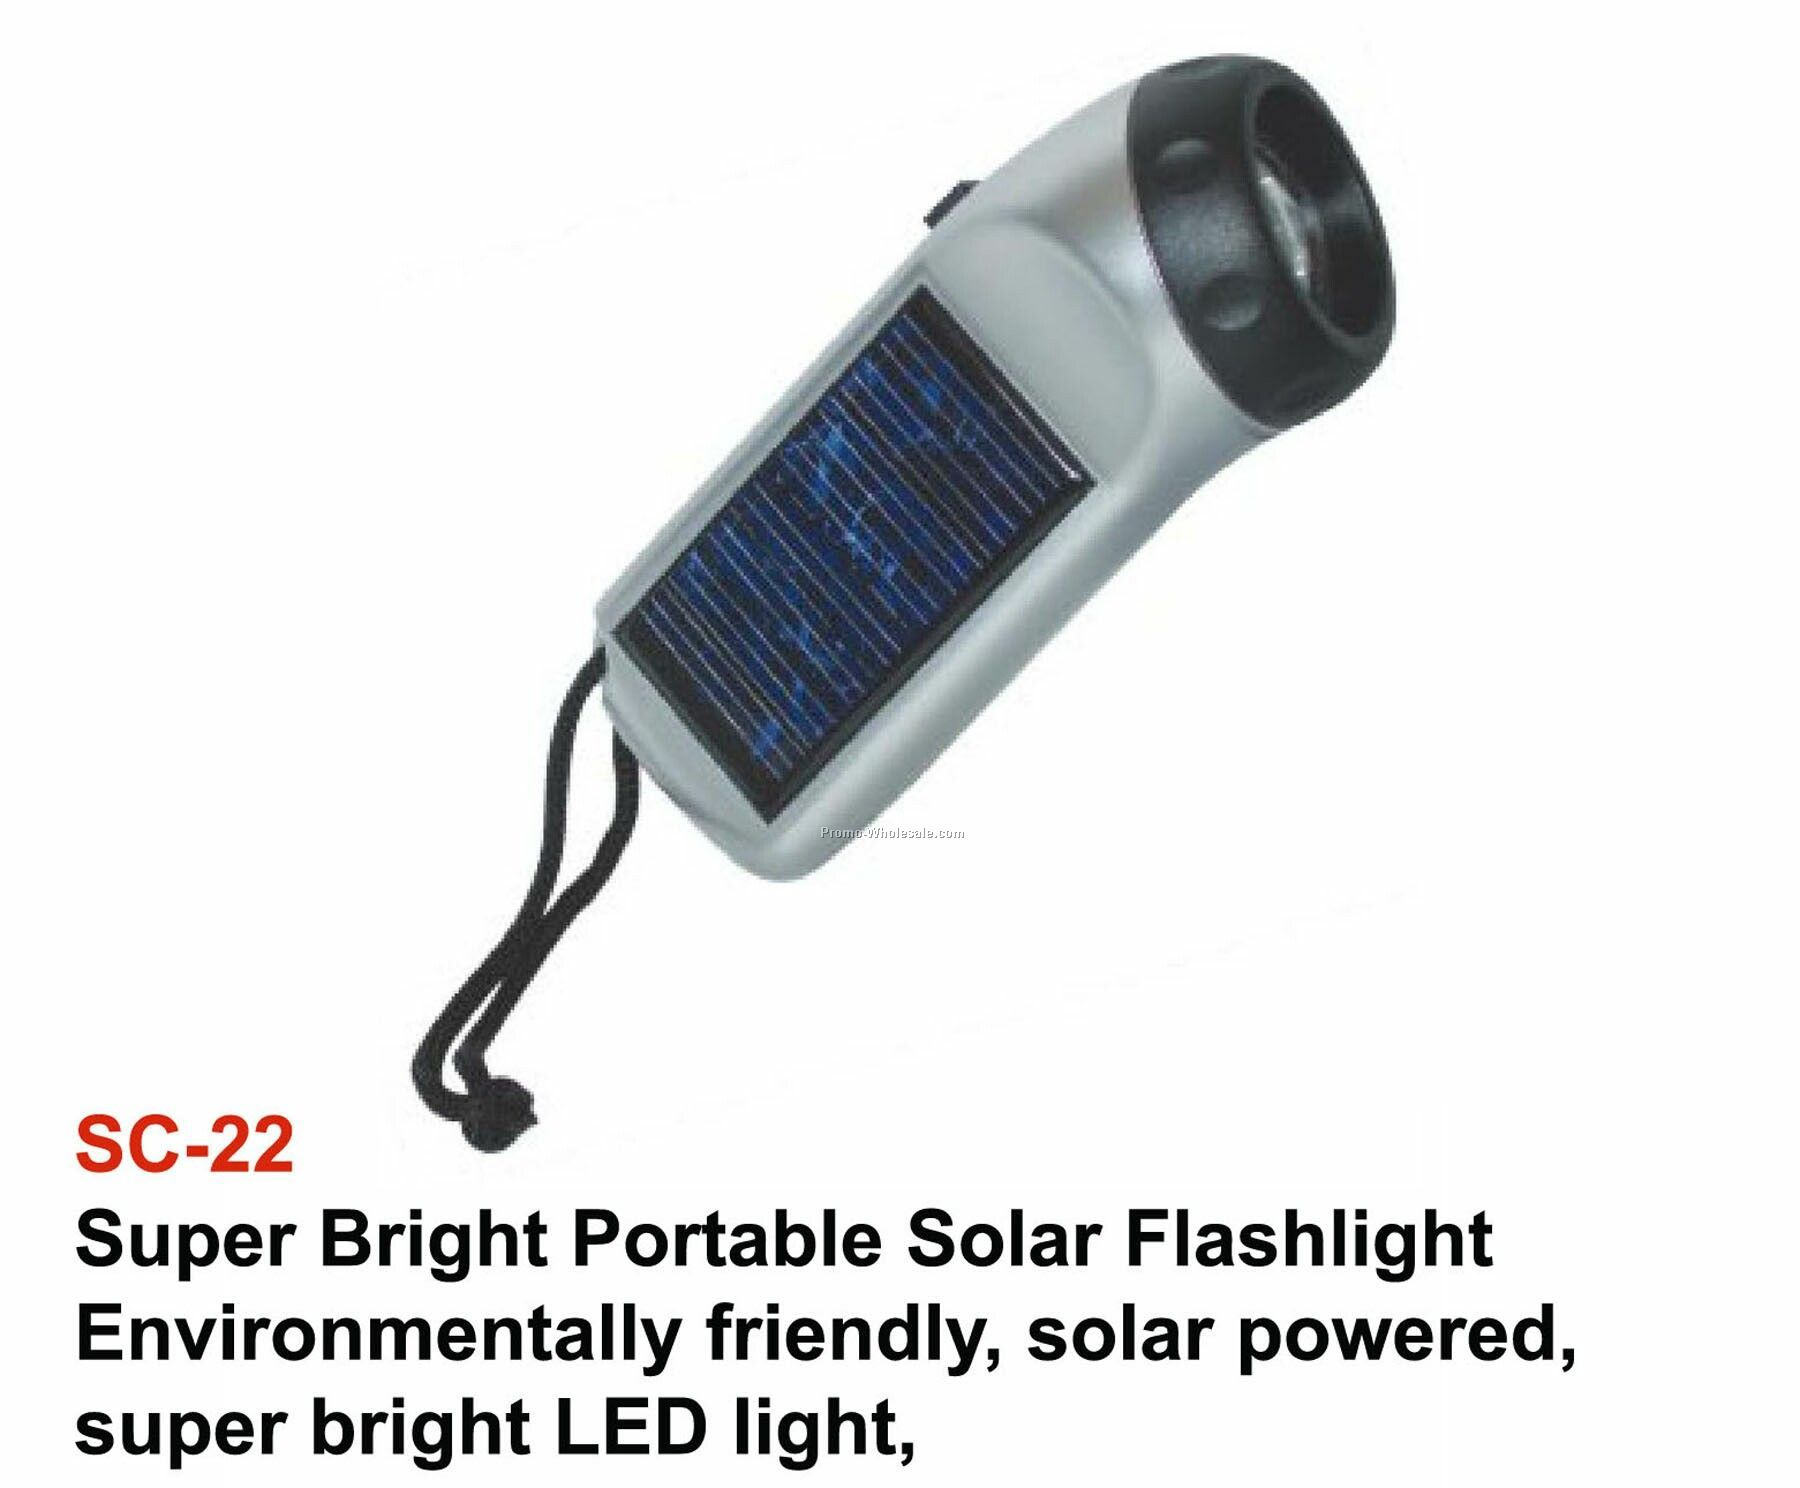 Solar Flashlight. White LED Light. On/Off Switch. Rechargeable Batteries.